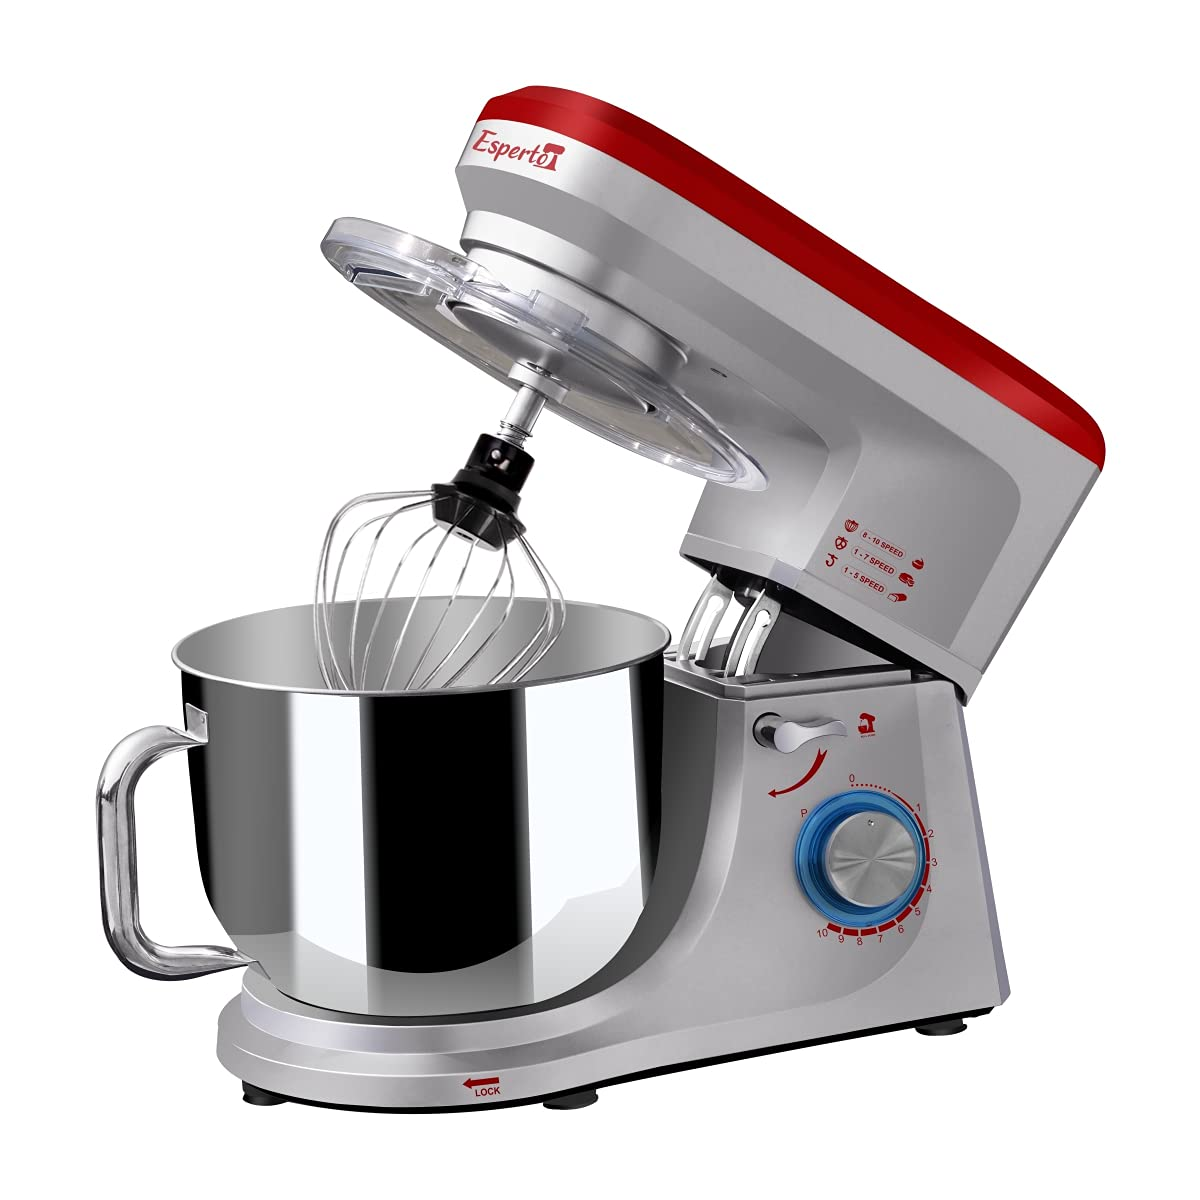 Inalsa Stand Mixer Esperto-1400W | 100% Pure Copper Motor| 6L SS Bowl| Includes Whisking Cone, Mixing Beater & Dough Hook (Silver/ Red): Amazon.in: Home & Kitchen